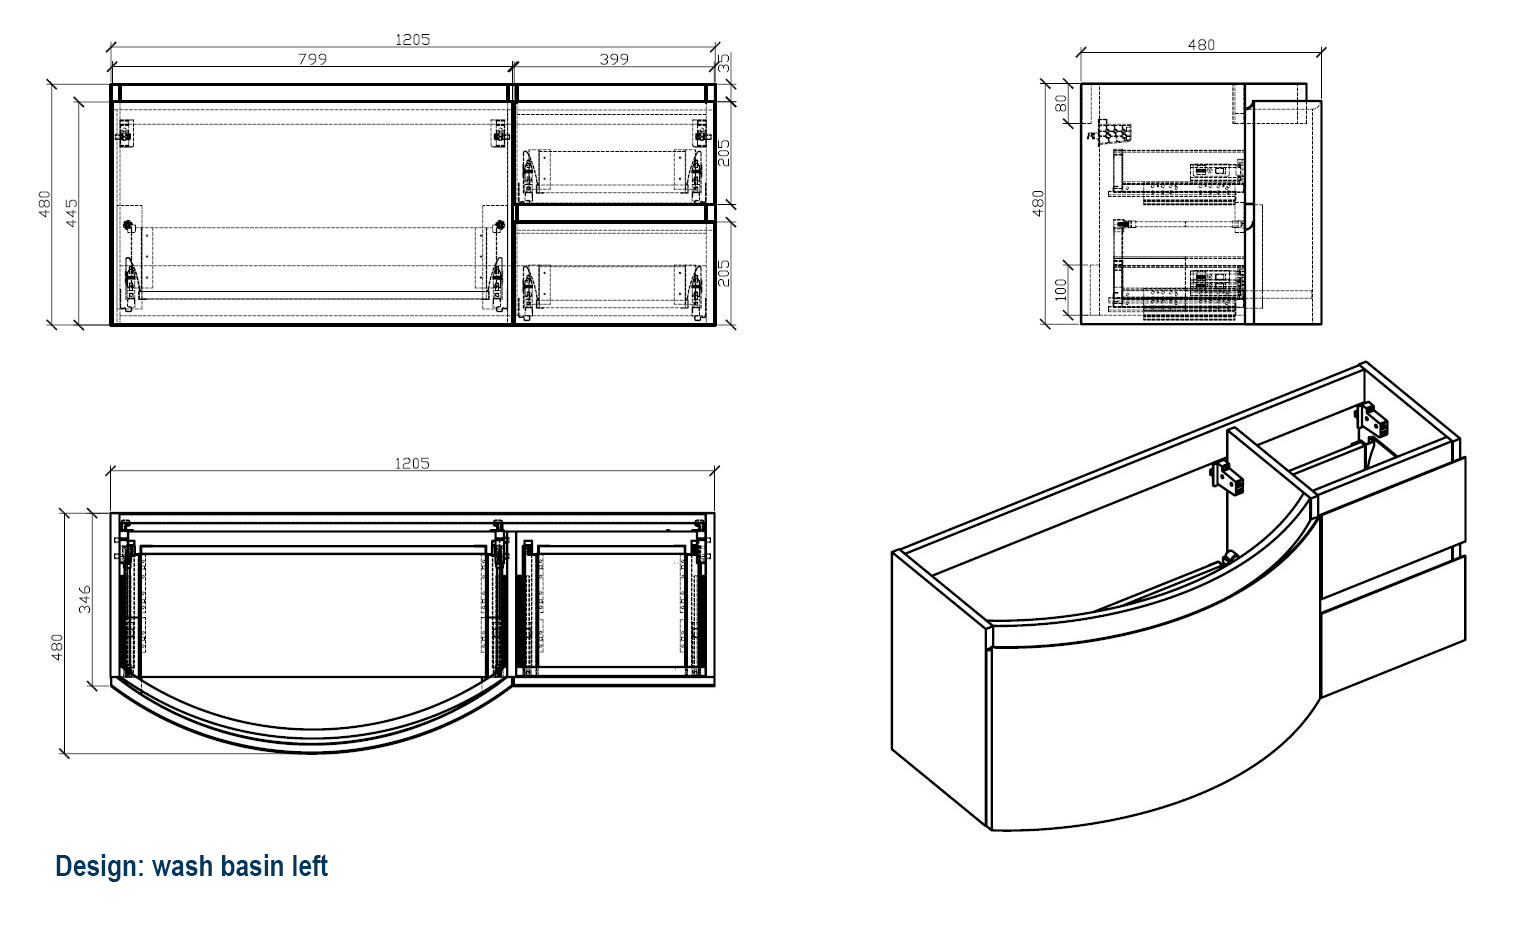 LAURANCE 1200 basin left - Drawing